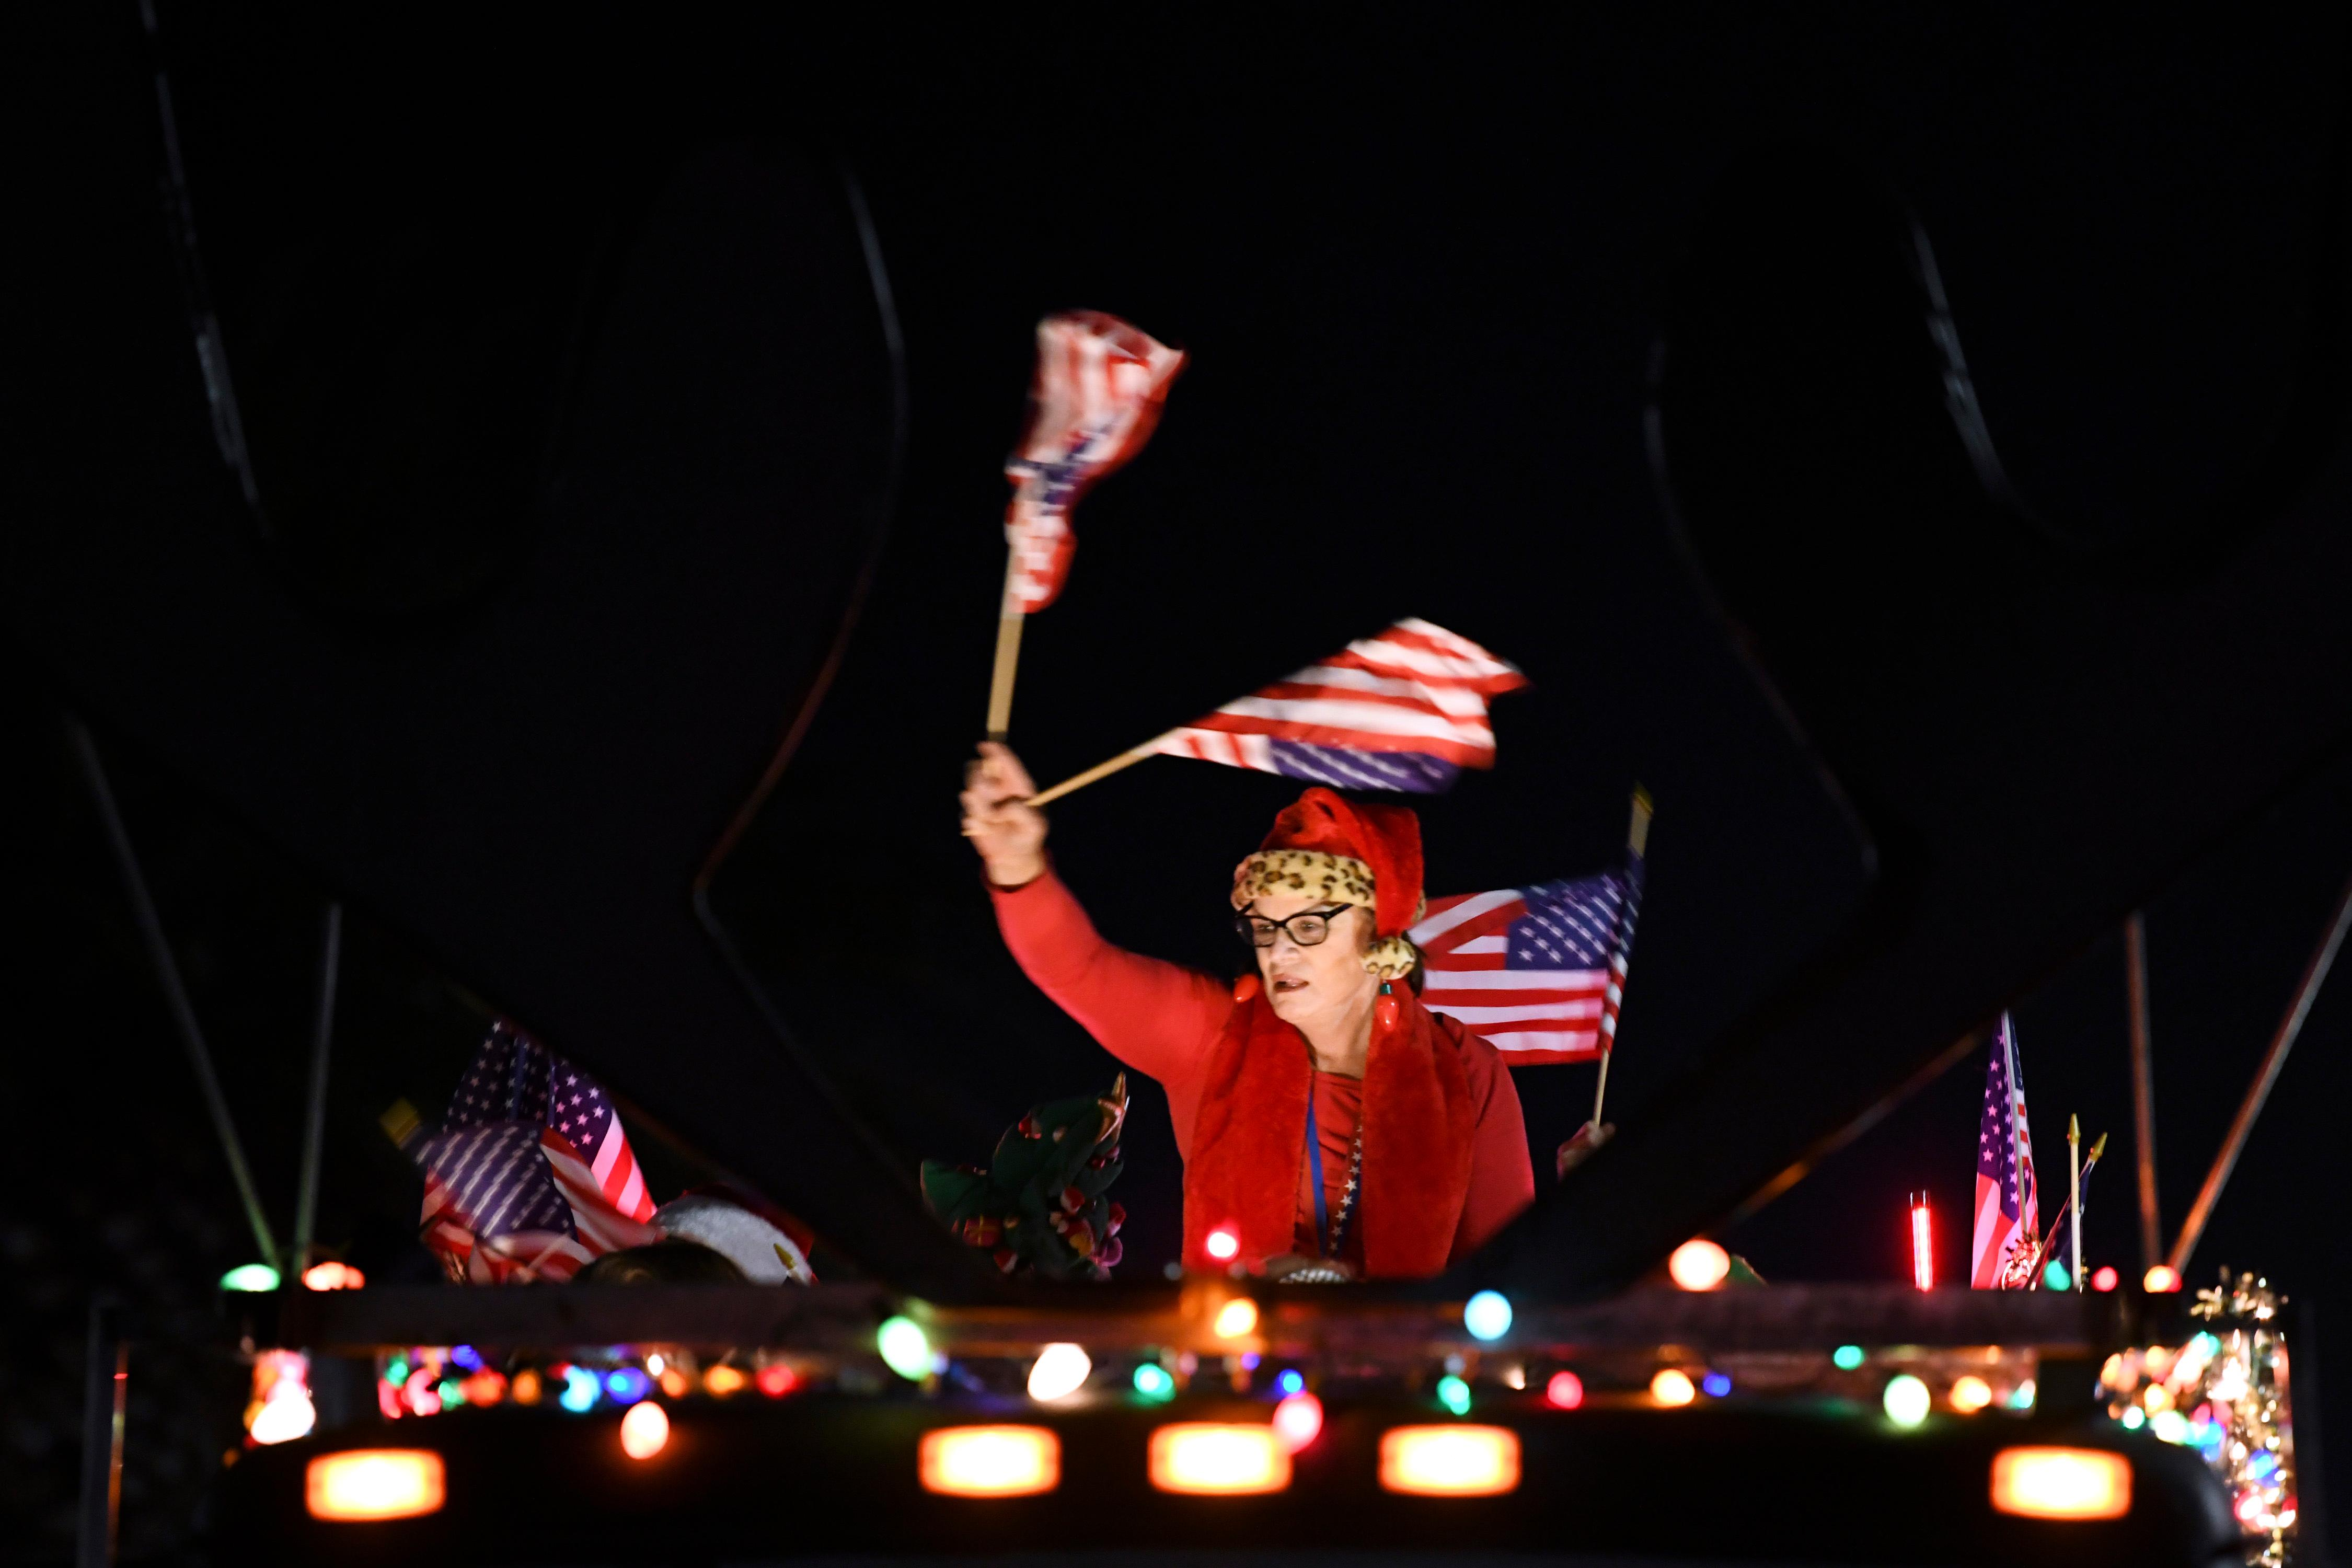 A woman waves United States flags during the Santa's Electric Parade Saturday, December 2, 2017, in Boulder City. [Sam Morris/Las Vegas News Bureau]